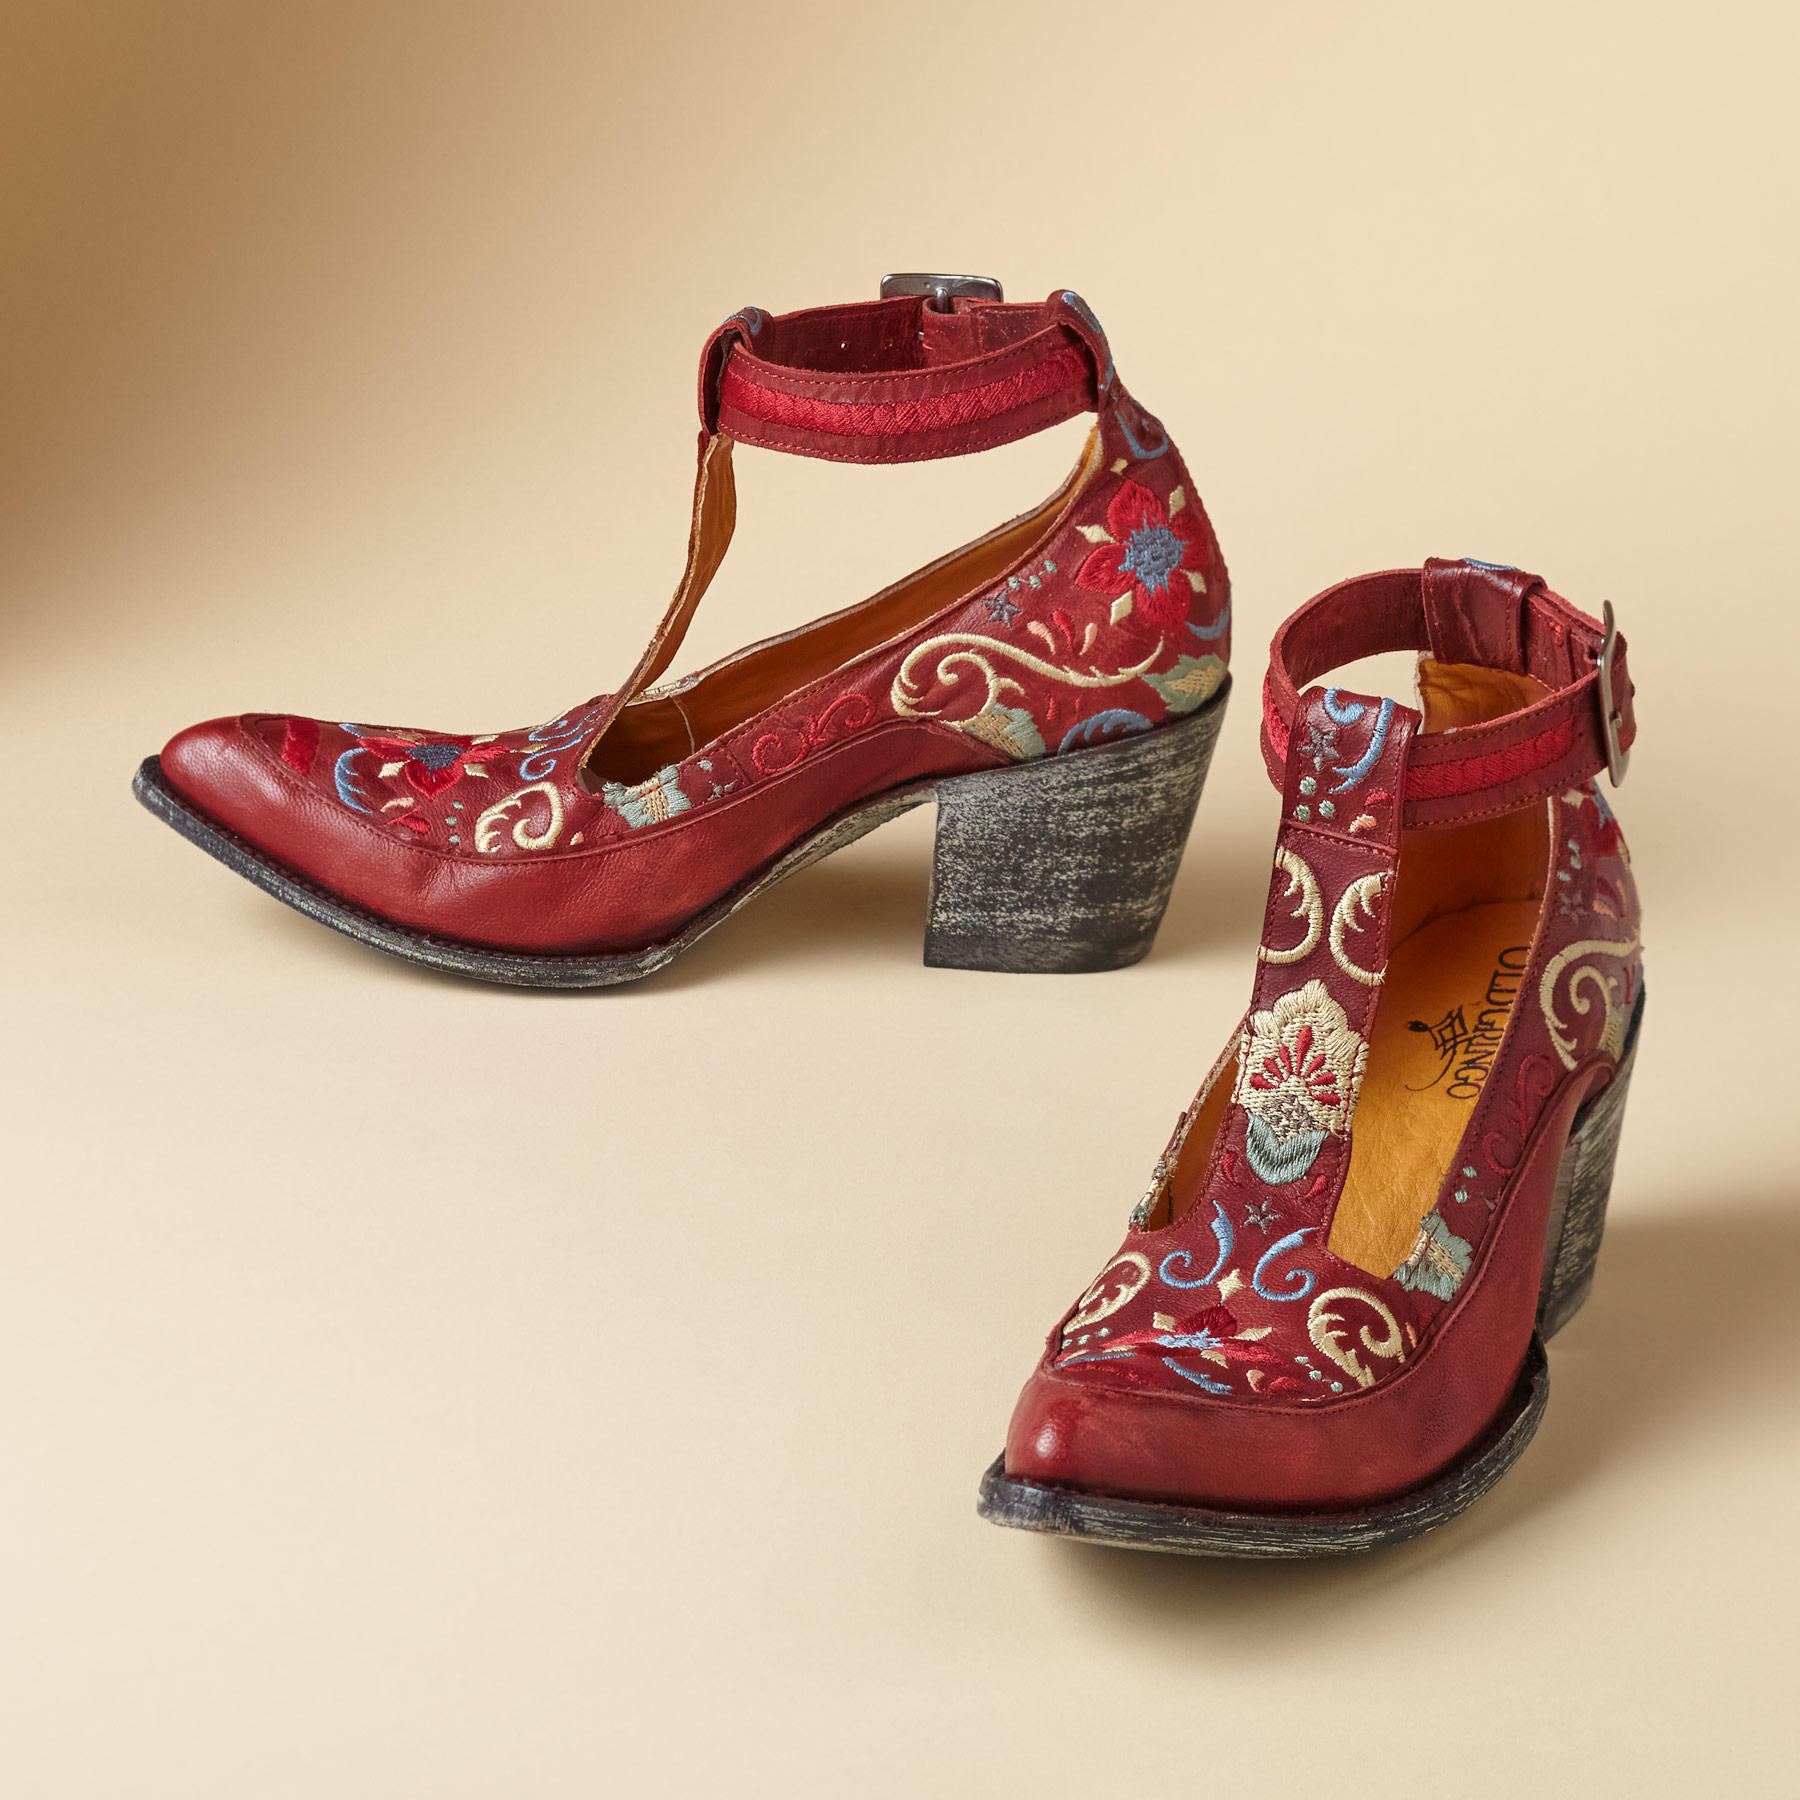 Old Gringo Deborah Rico T-strap Shoes